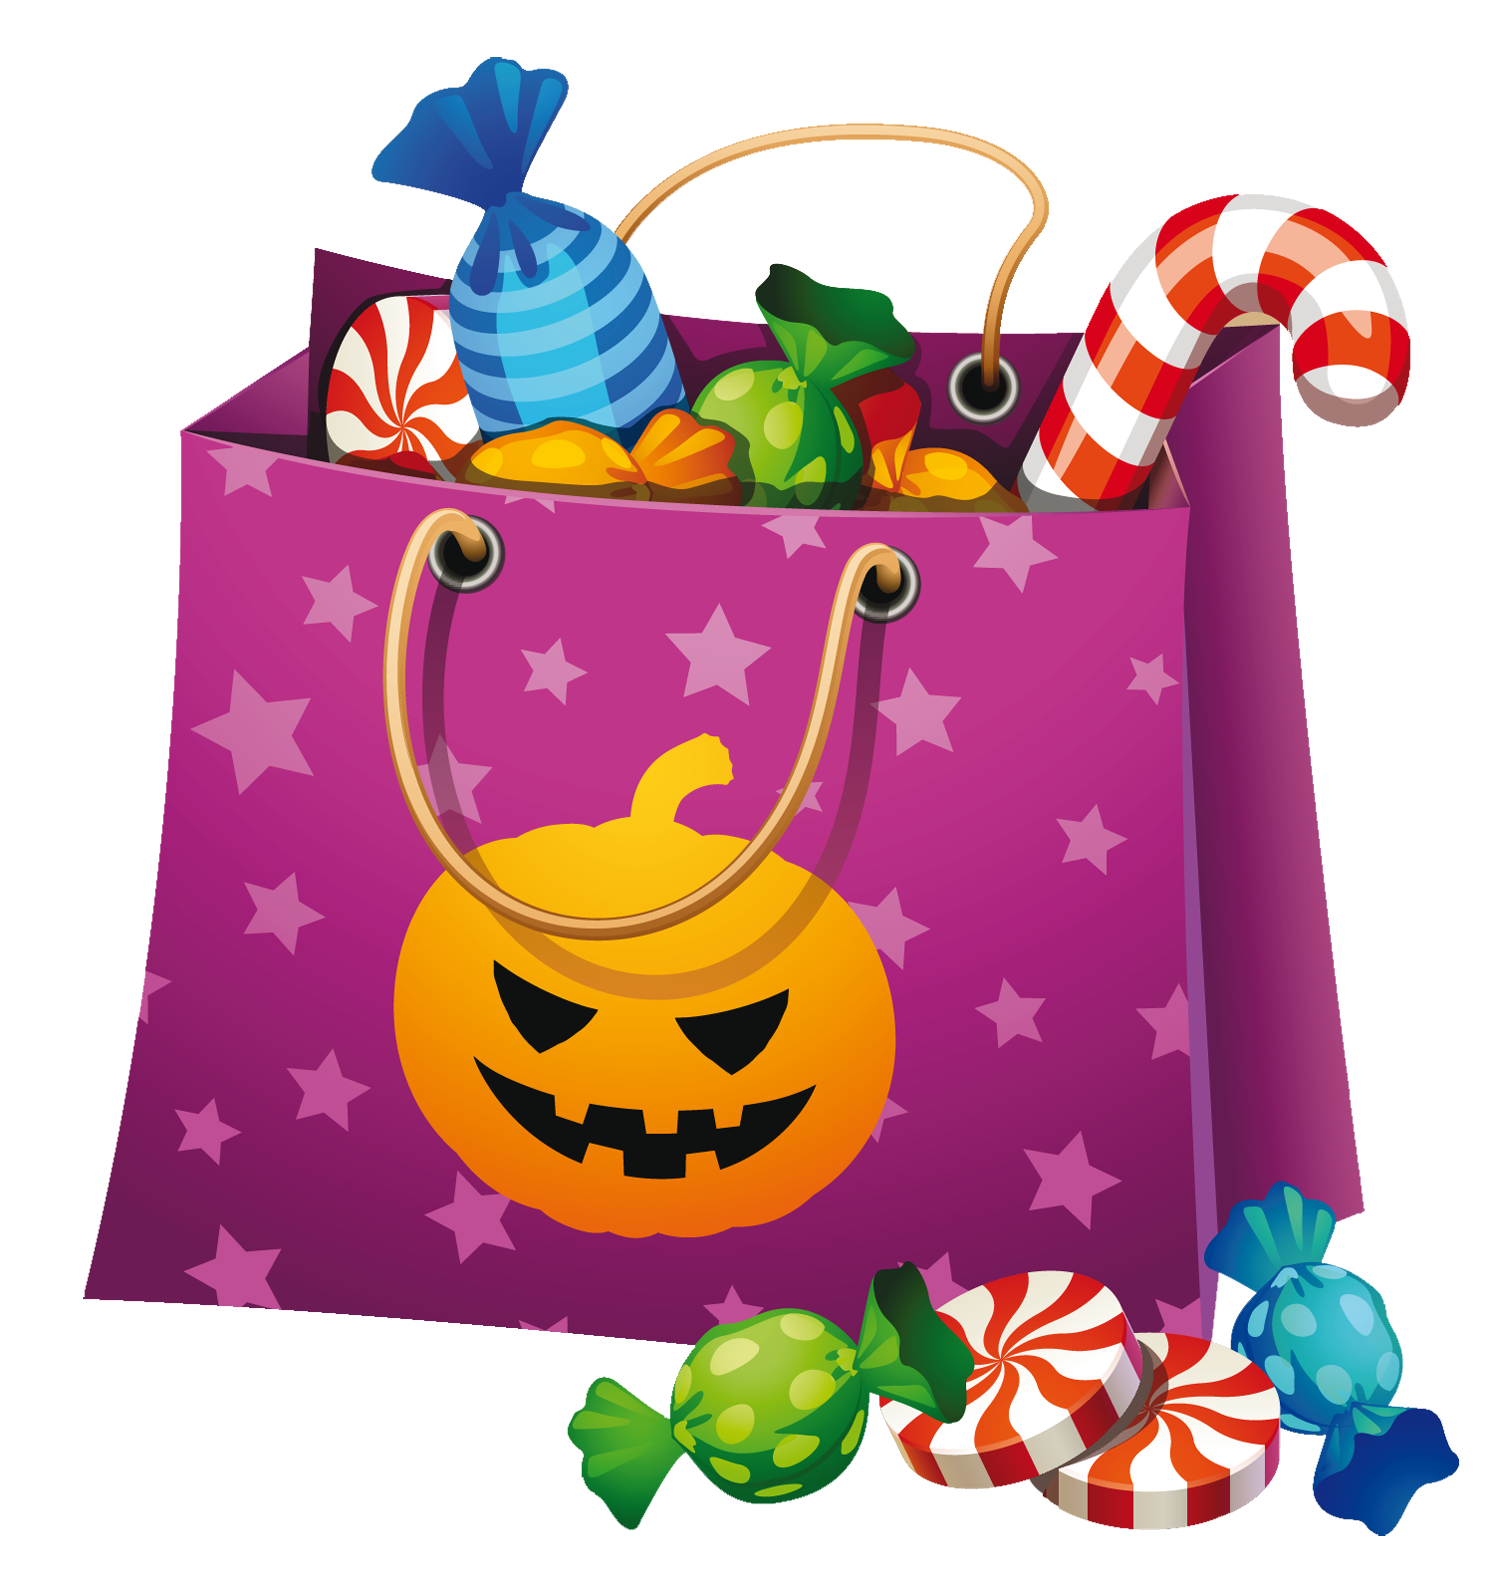 Halloween Png Candy Bag Clipart-Halloween Png Candy Bag Clipart-15